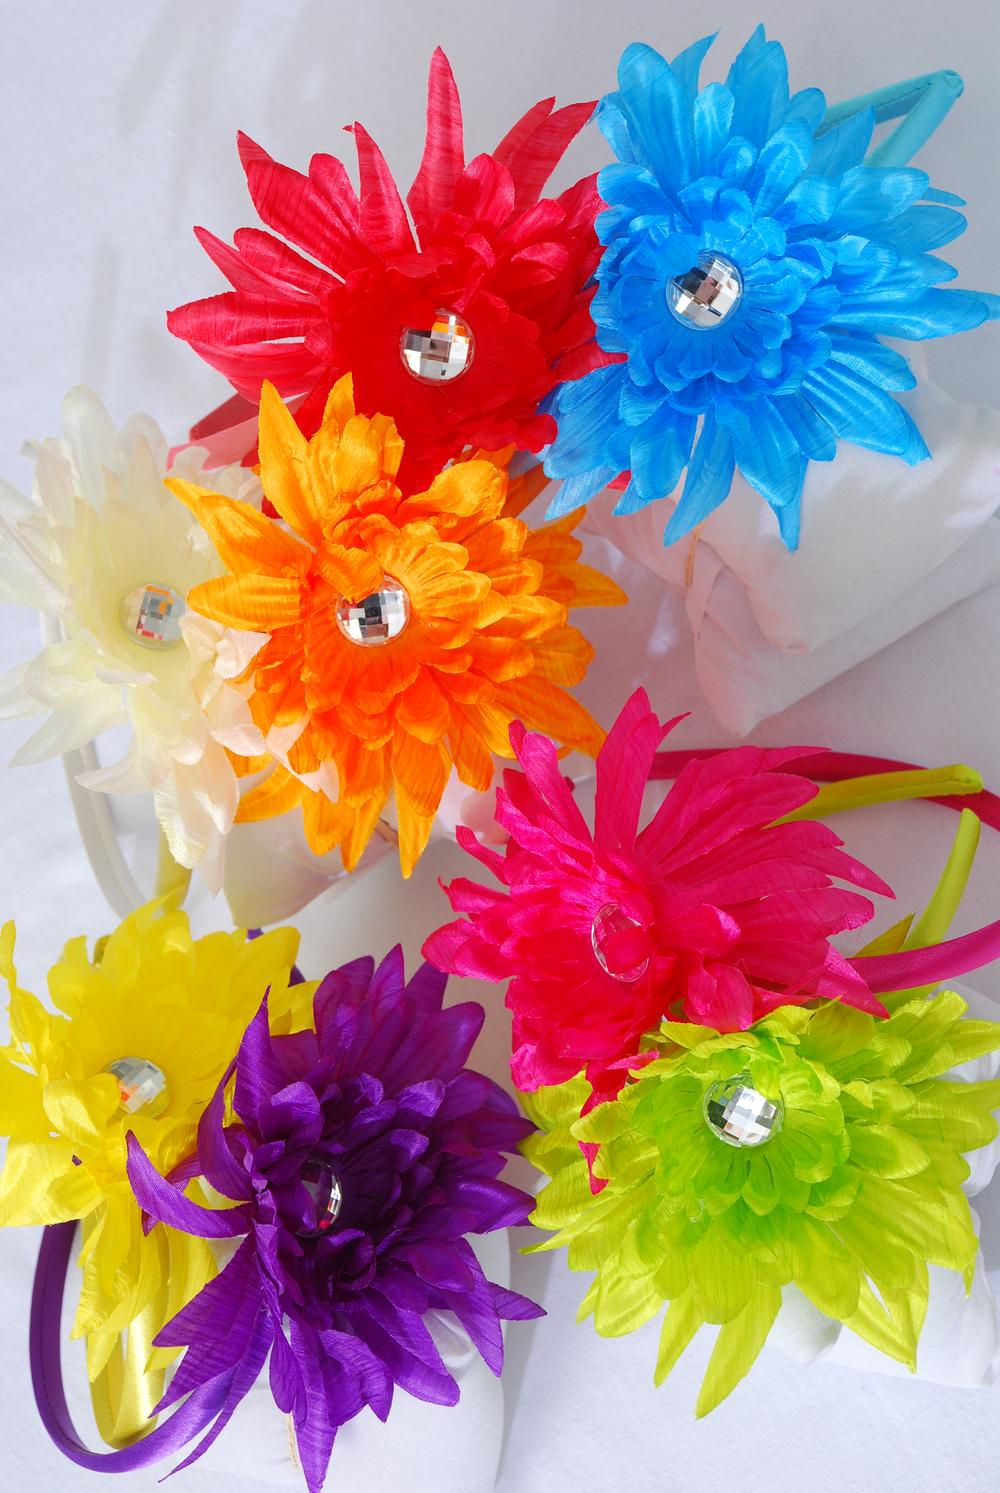 "Headband Satin Gerber Daisy/DZ **Citrus** Size-4.5"",2 Red,2 Fuchsia,2 Beige, 2 Orange,1 Blue,1 Yellow,1 Lime,1 Purple,8 Color Asst,Hang tag & UPC code,W Clear Box -"